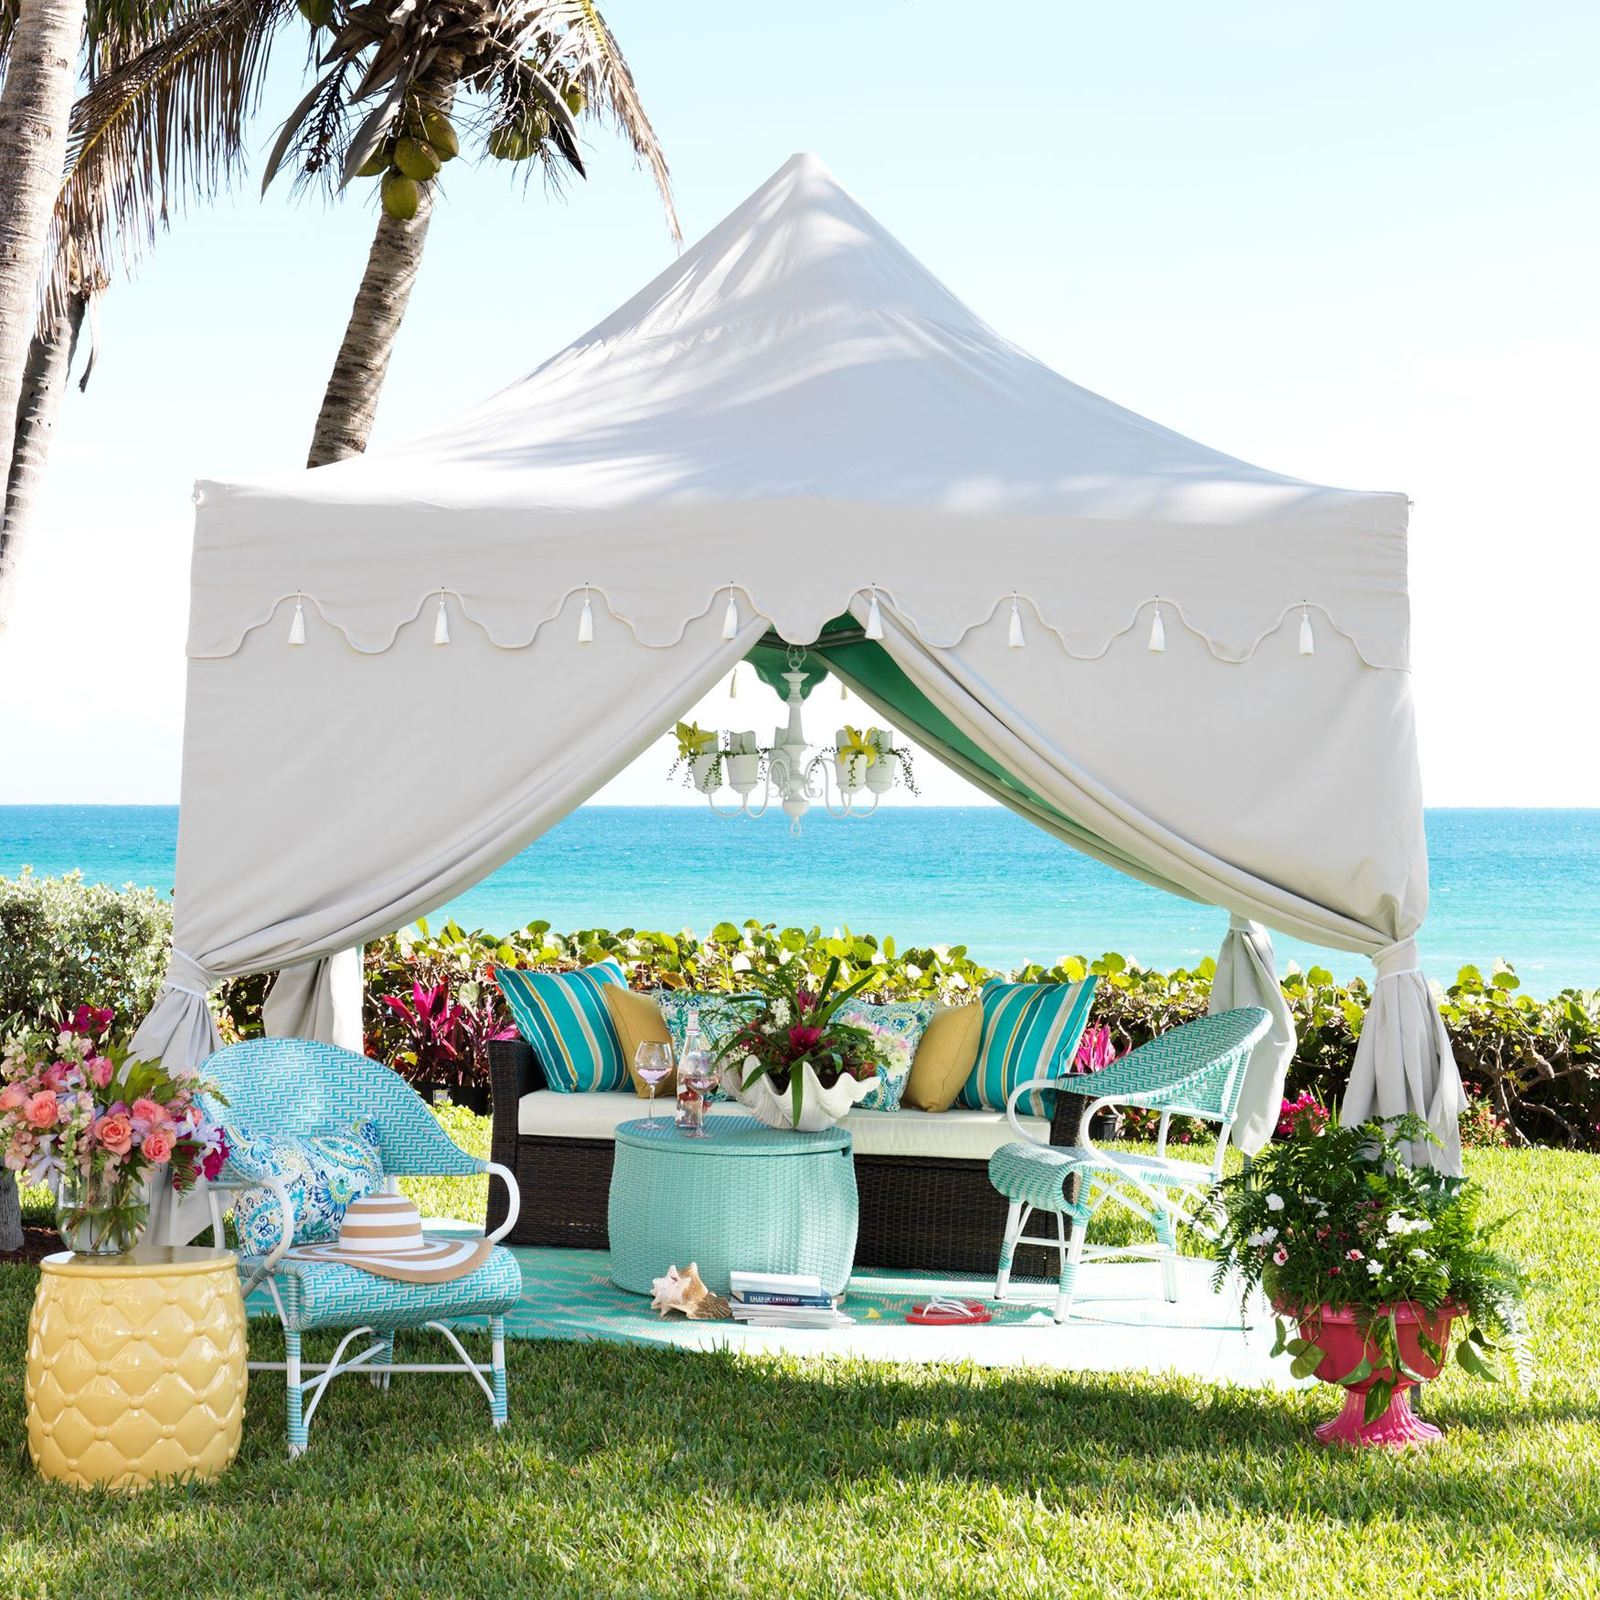 Outdoor Patio Gazebo w/ Scalloped Edges and Tassles 10'x10' Backyard Canopy Tent